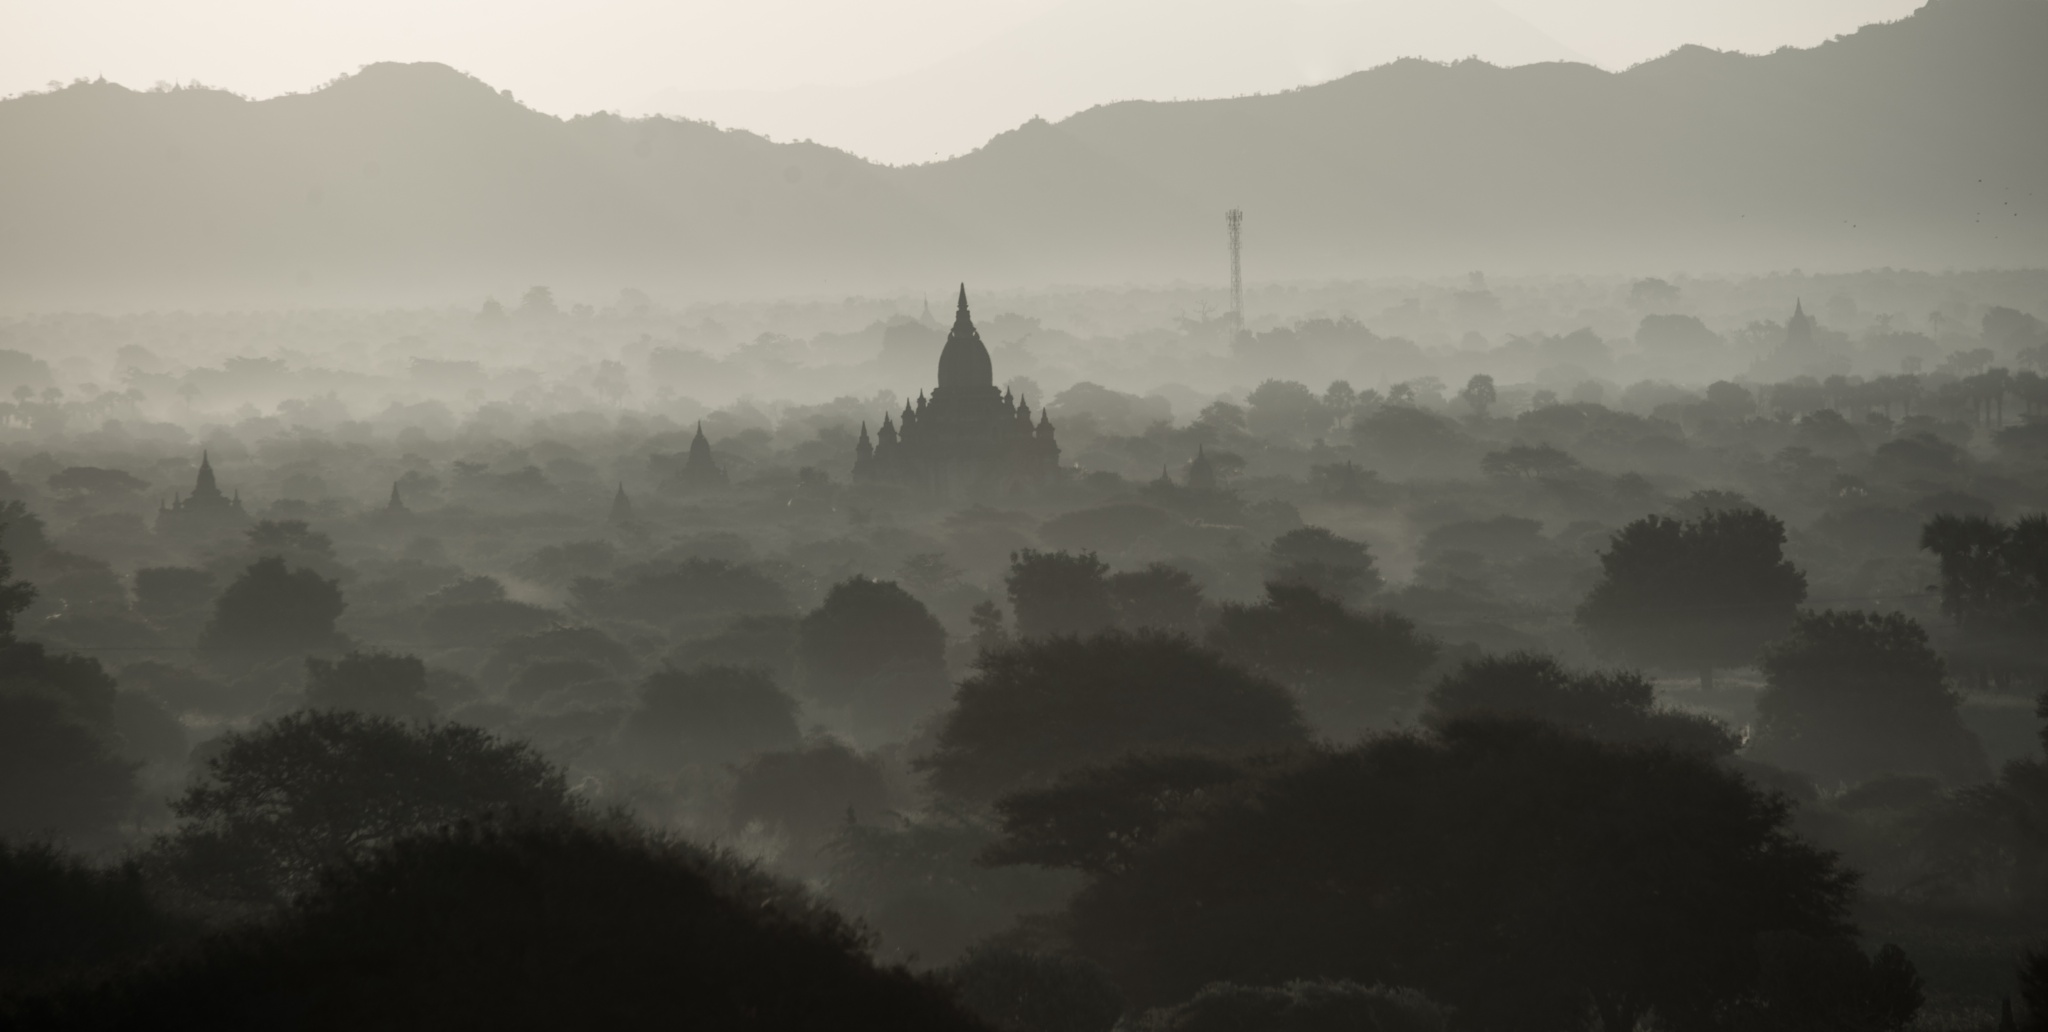 The Plains of Bagan by davemet